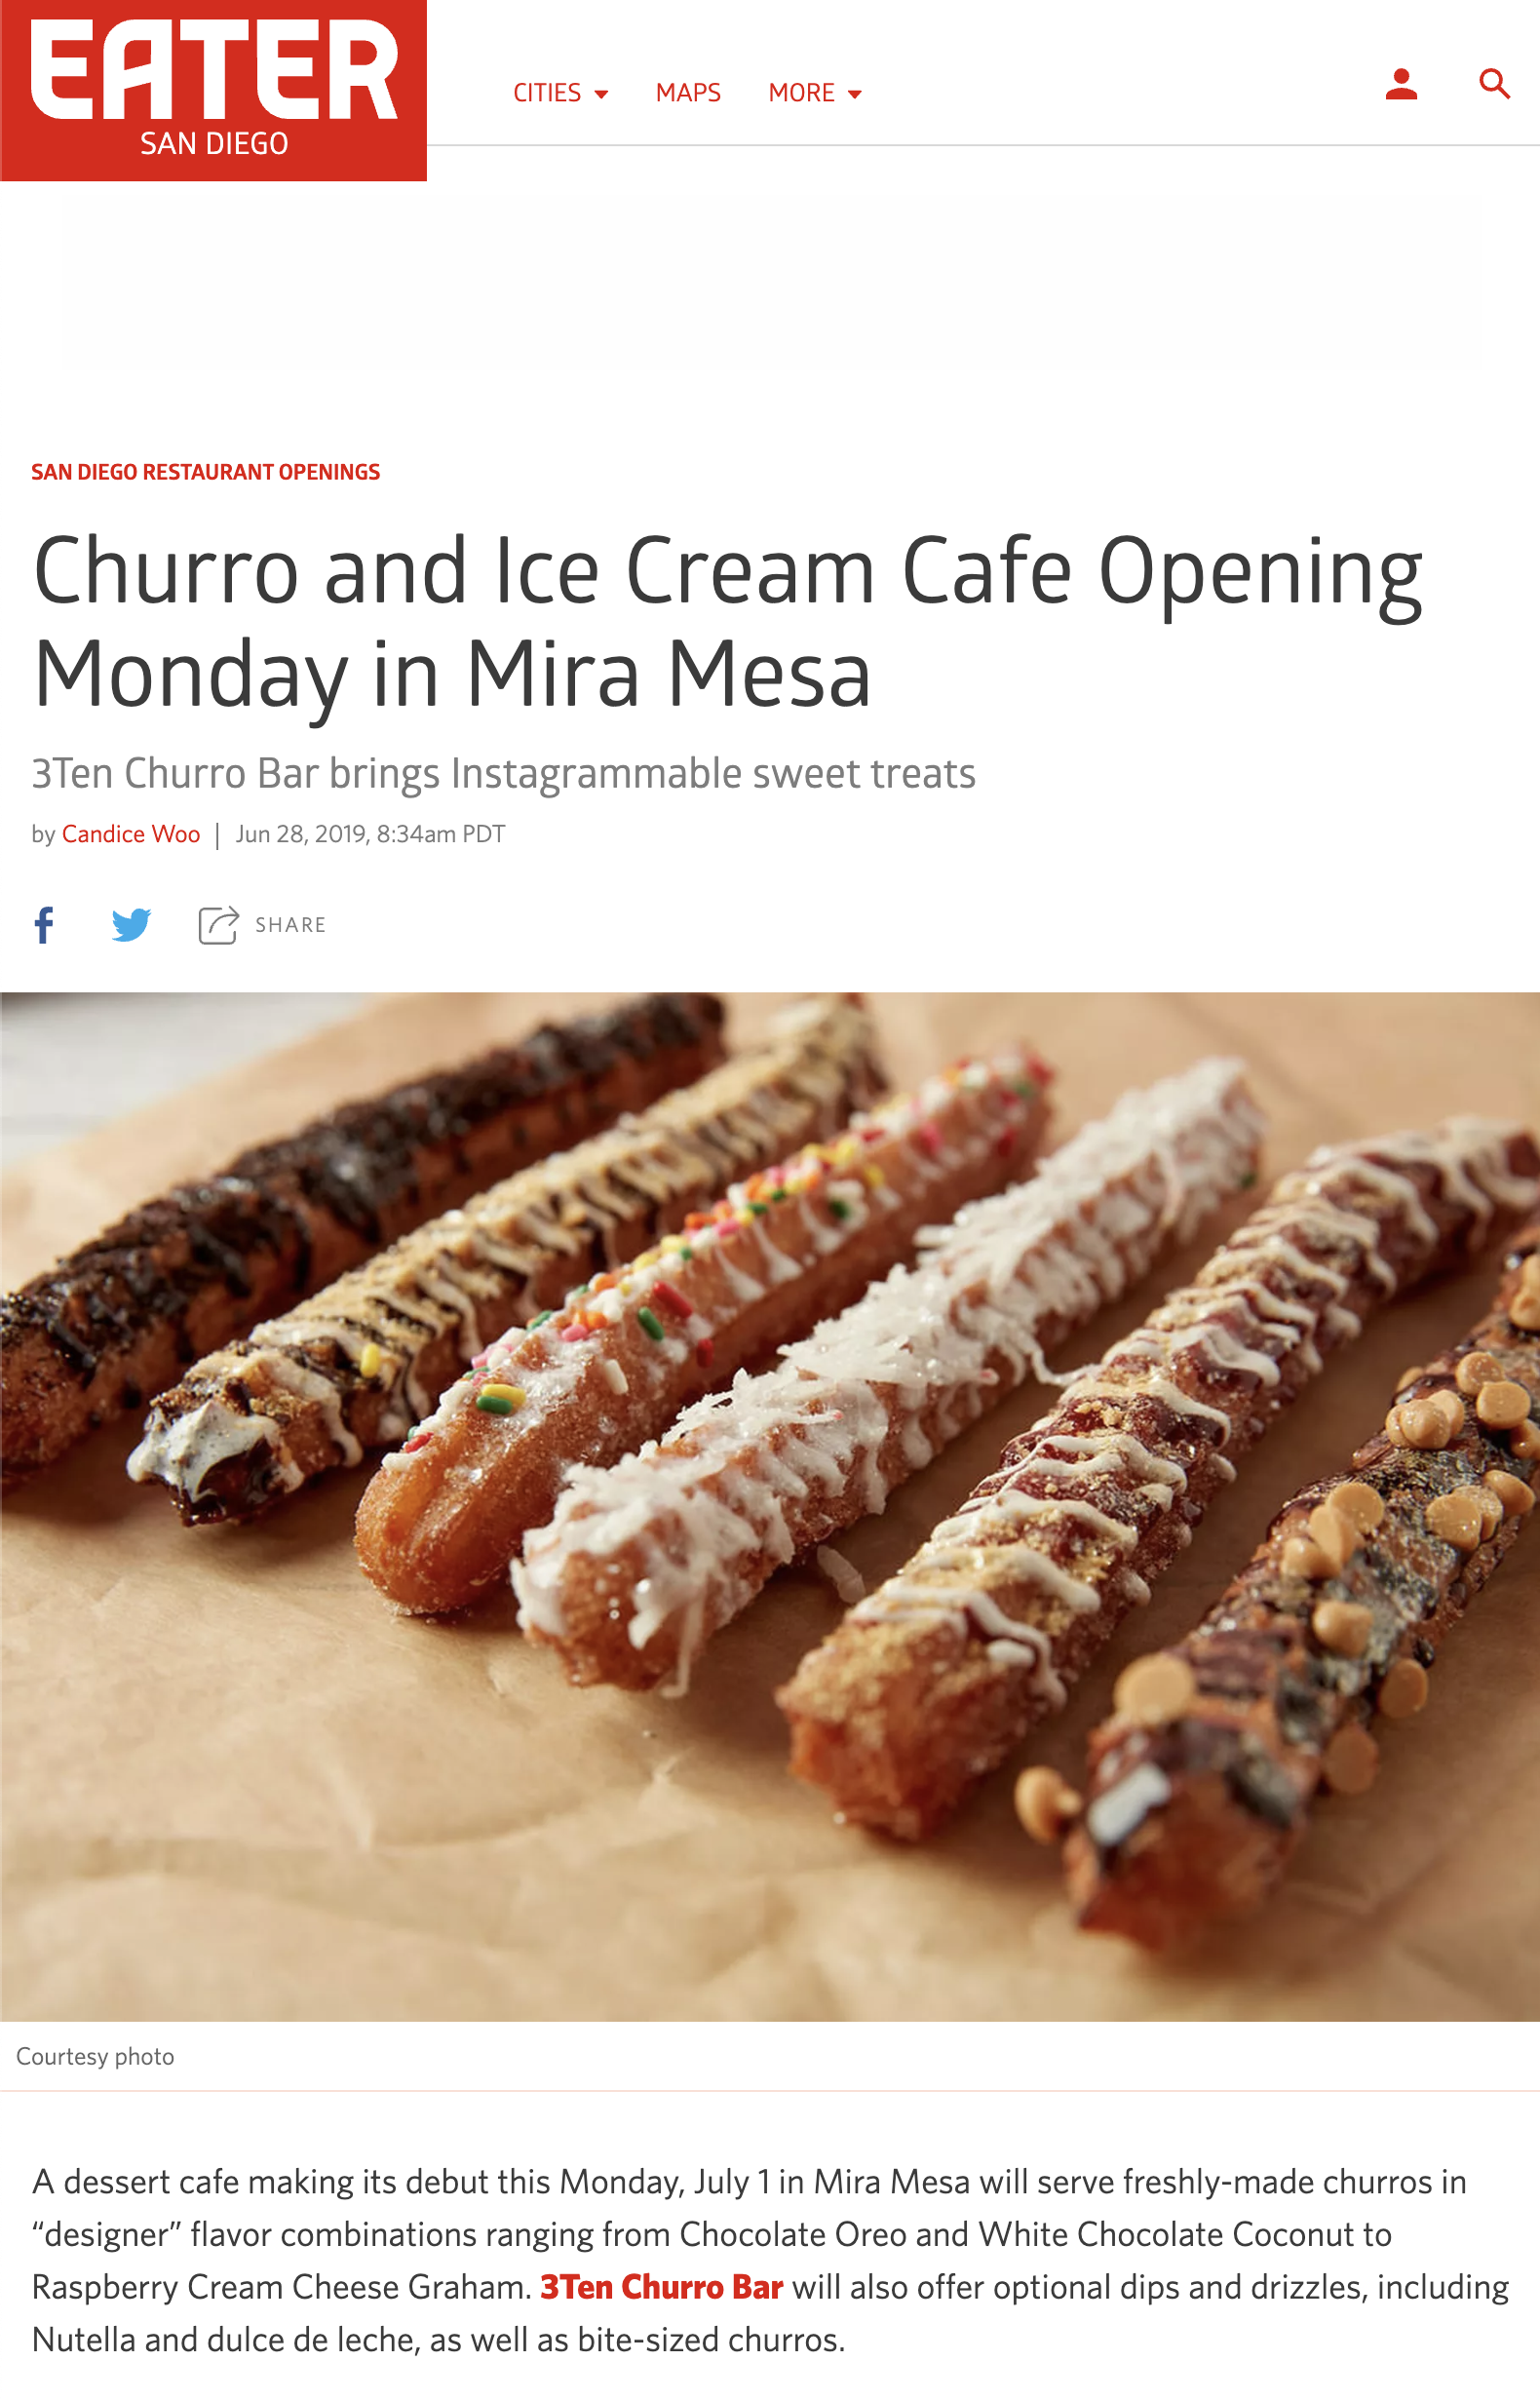 EATER SAN DIEGO - Churro and Ice Cream Cafe Opening Monday in Mira Mesa